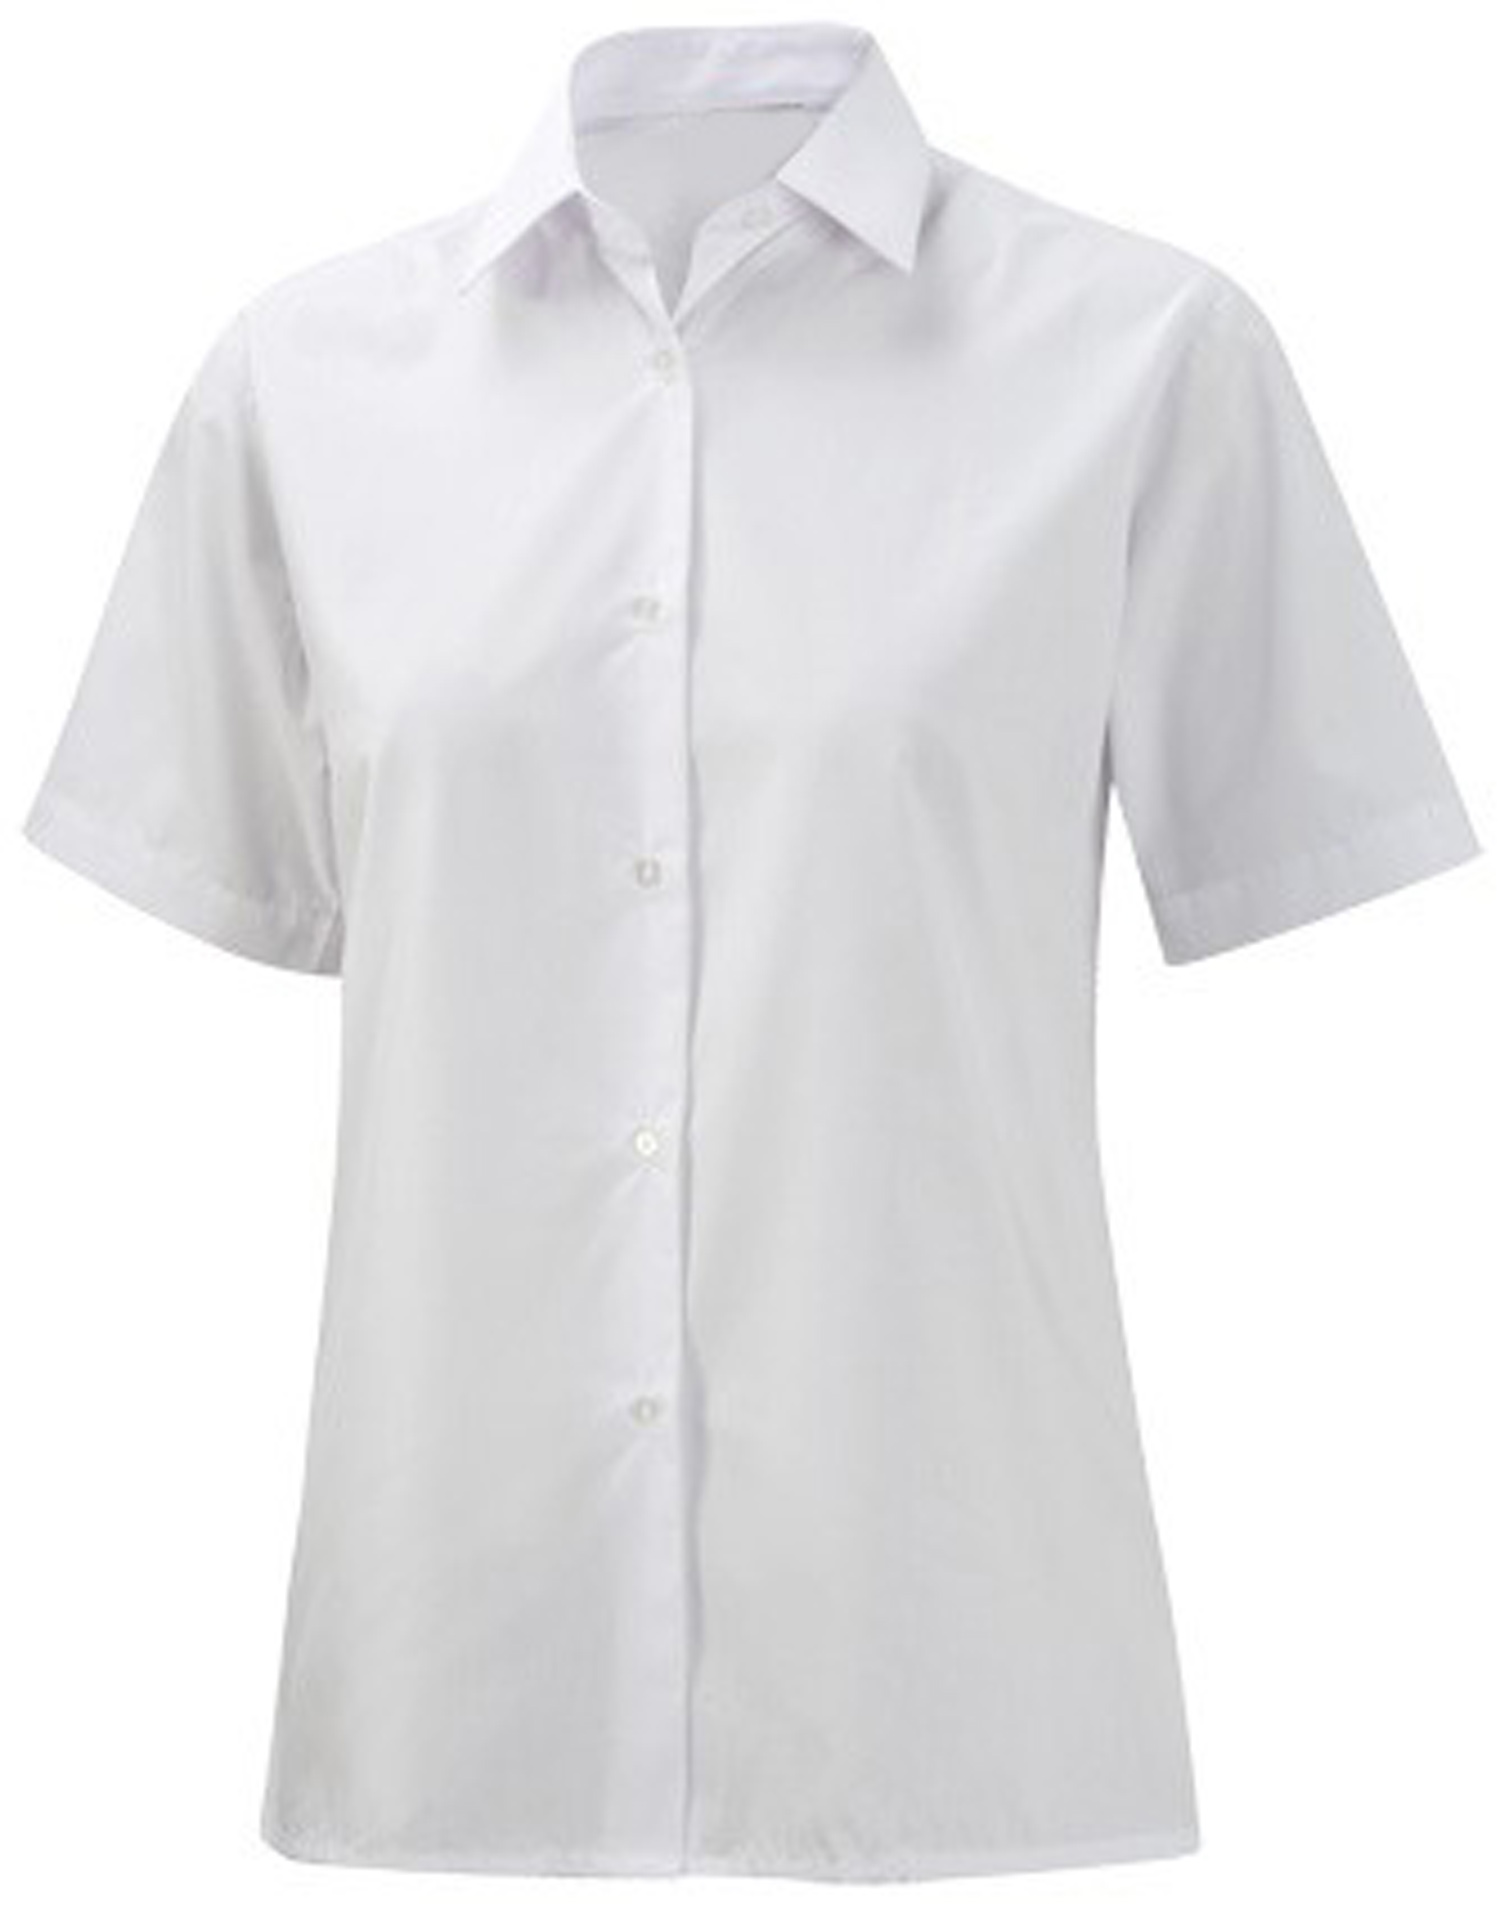 girls school uniform short sleeves shirt schoolwear smart